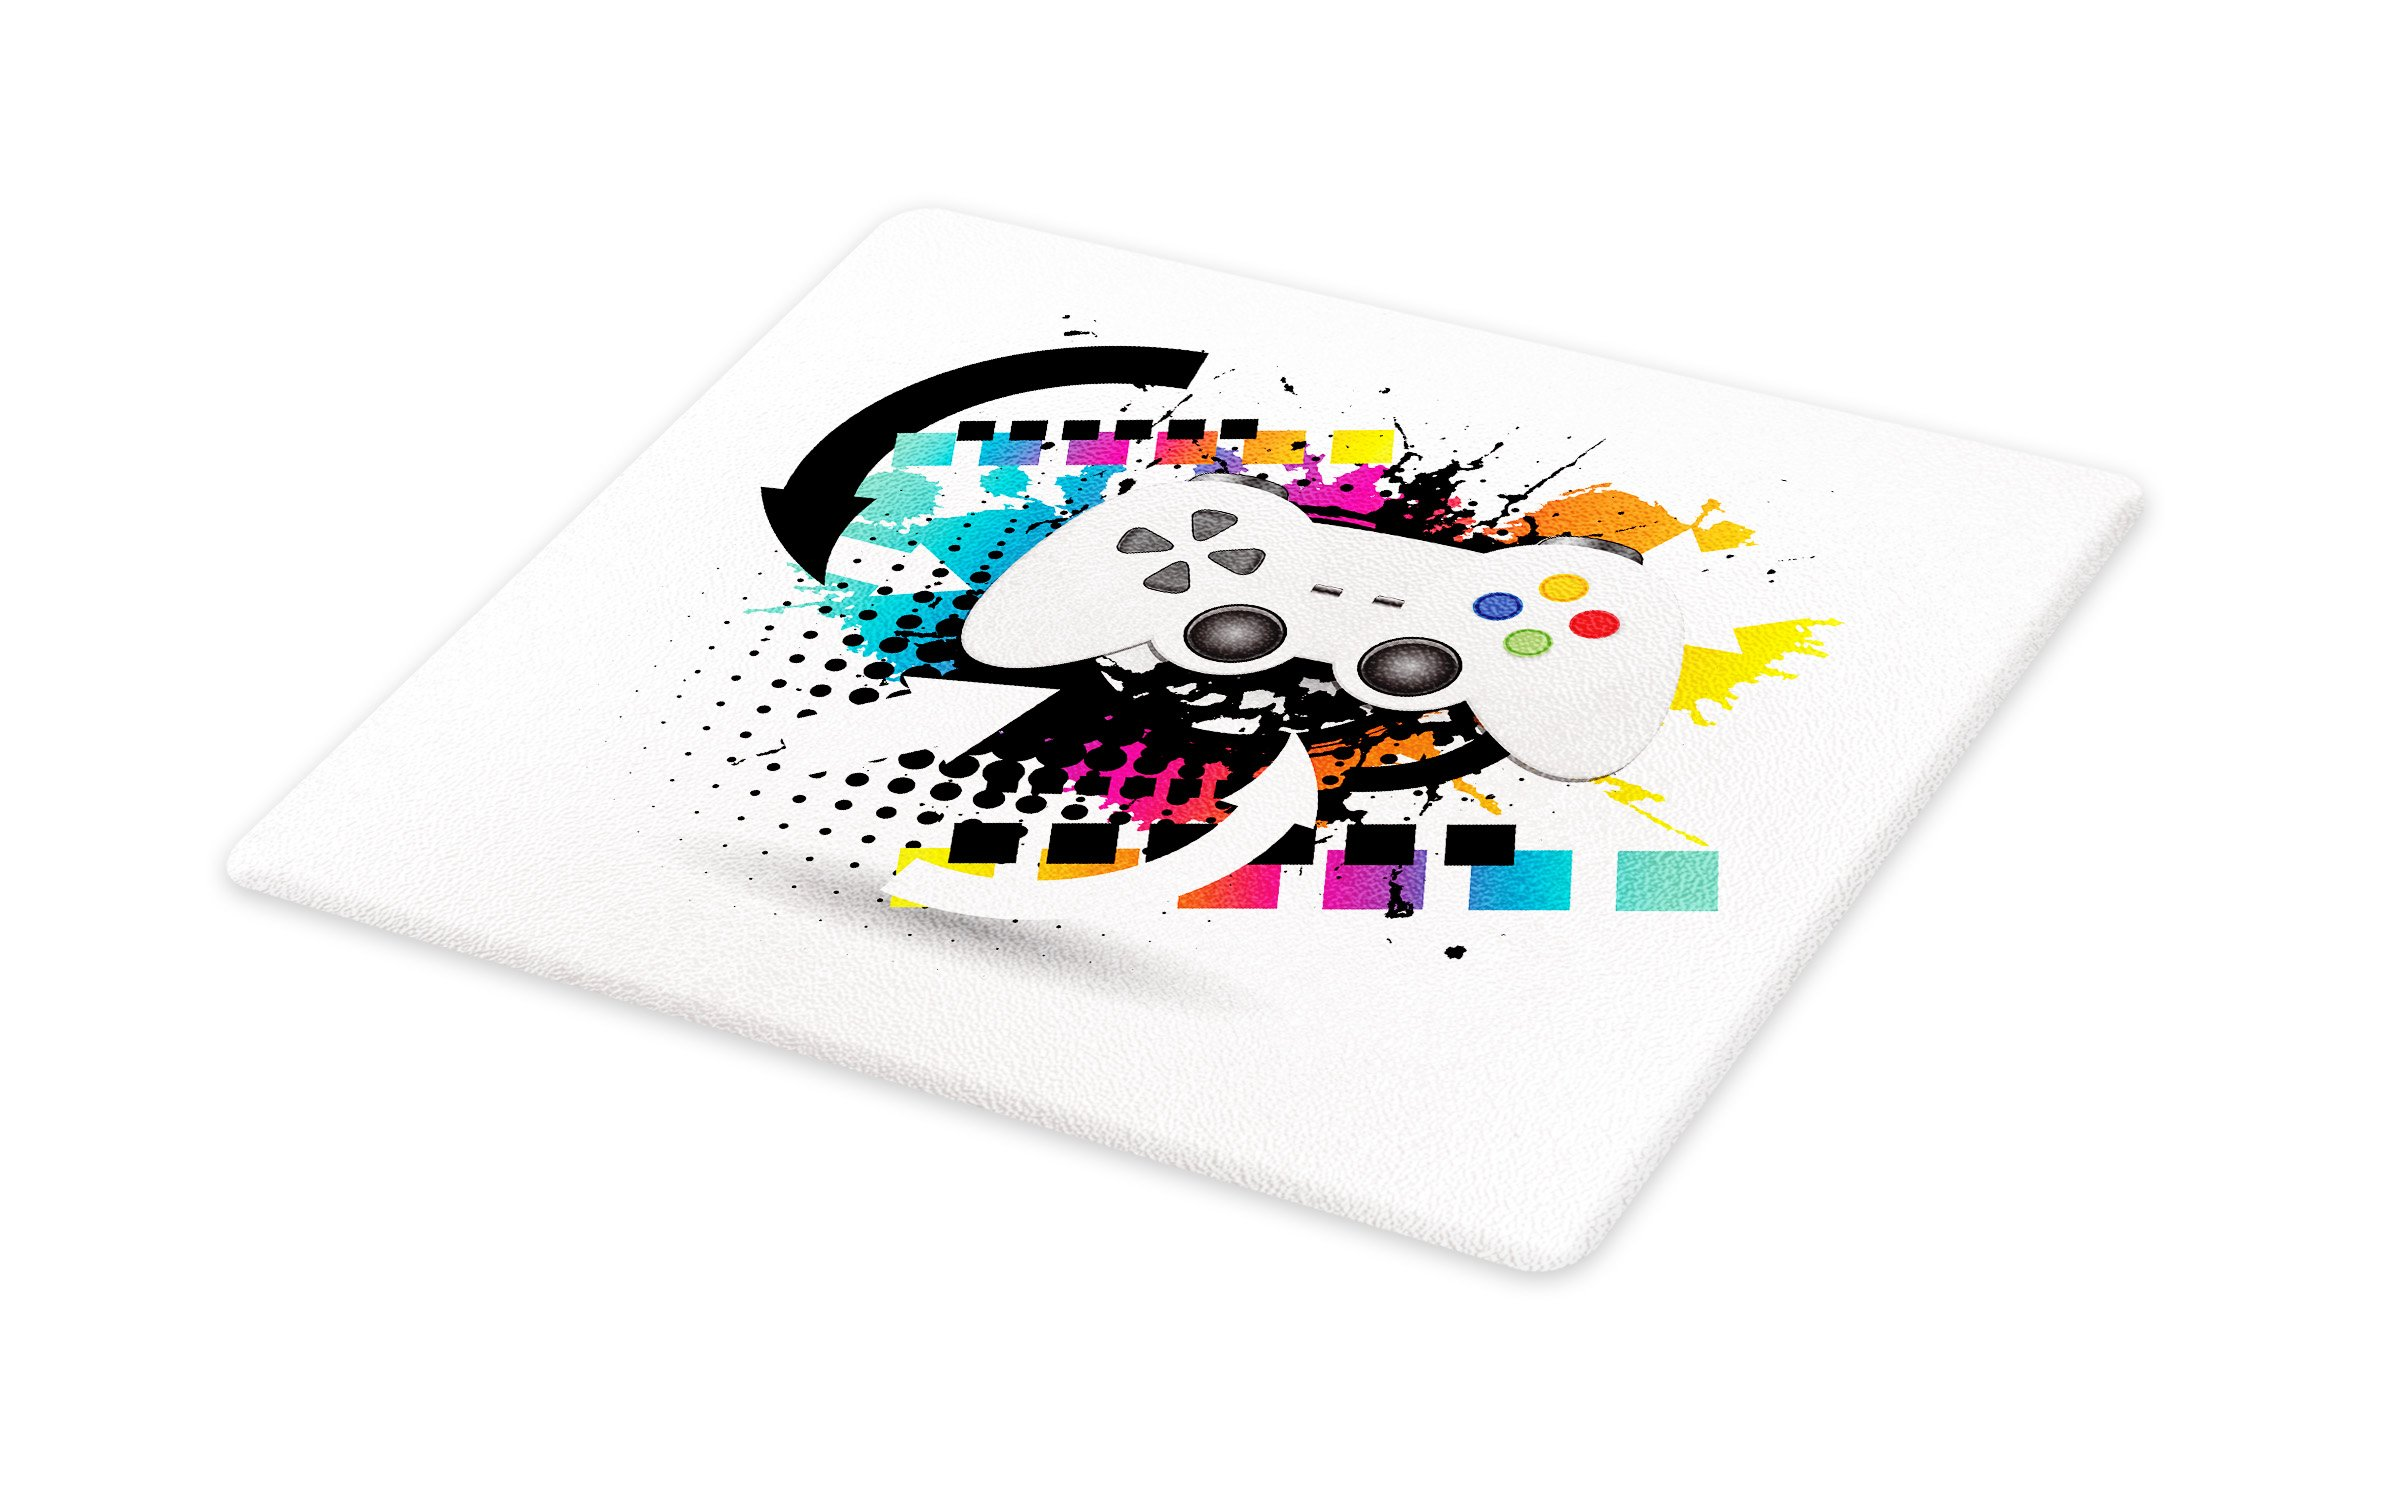 Lunarable Gamer Cutting Board, Modern Console Game Comtroller with Halftone Motif and Color Splashes Background, Decorative Tempered Glass Cutting and Serving Board, Large Size, Multicolor